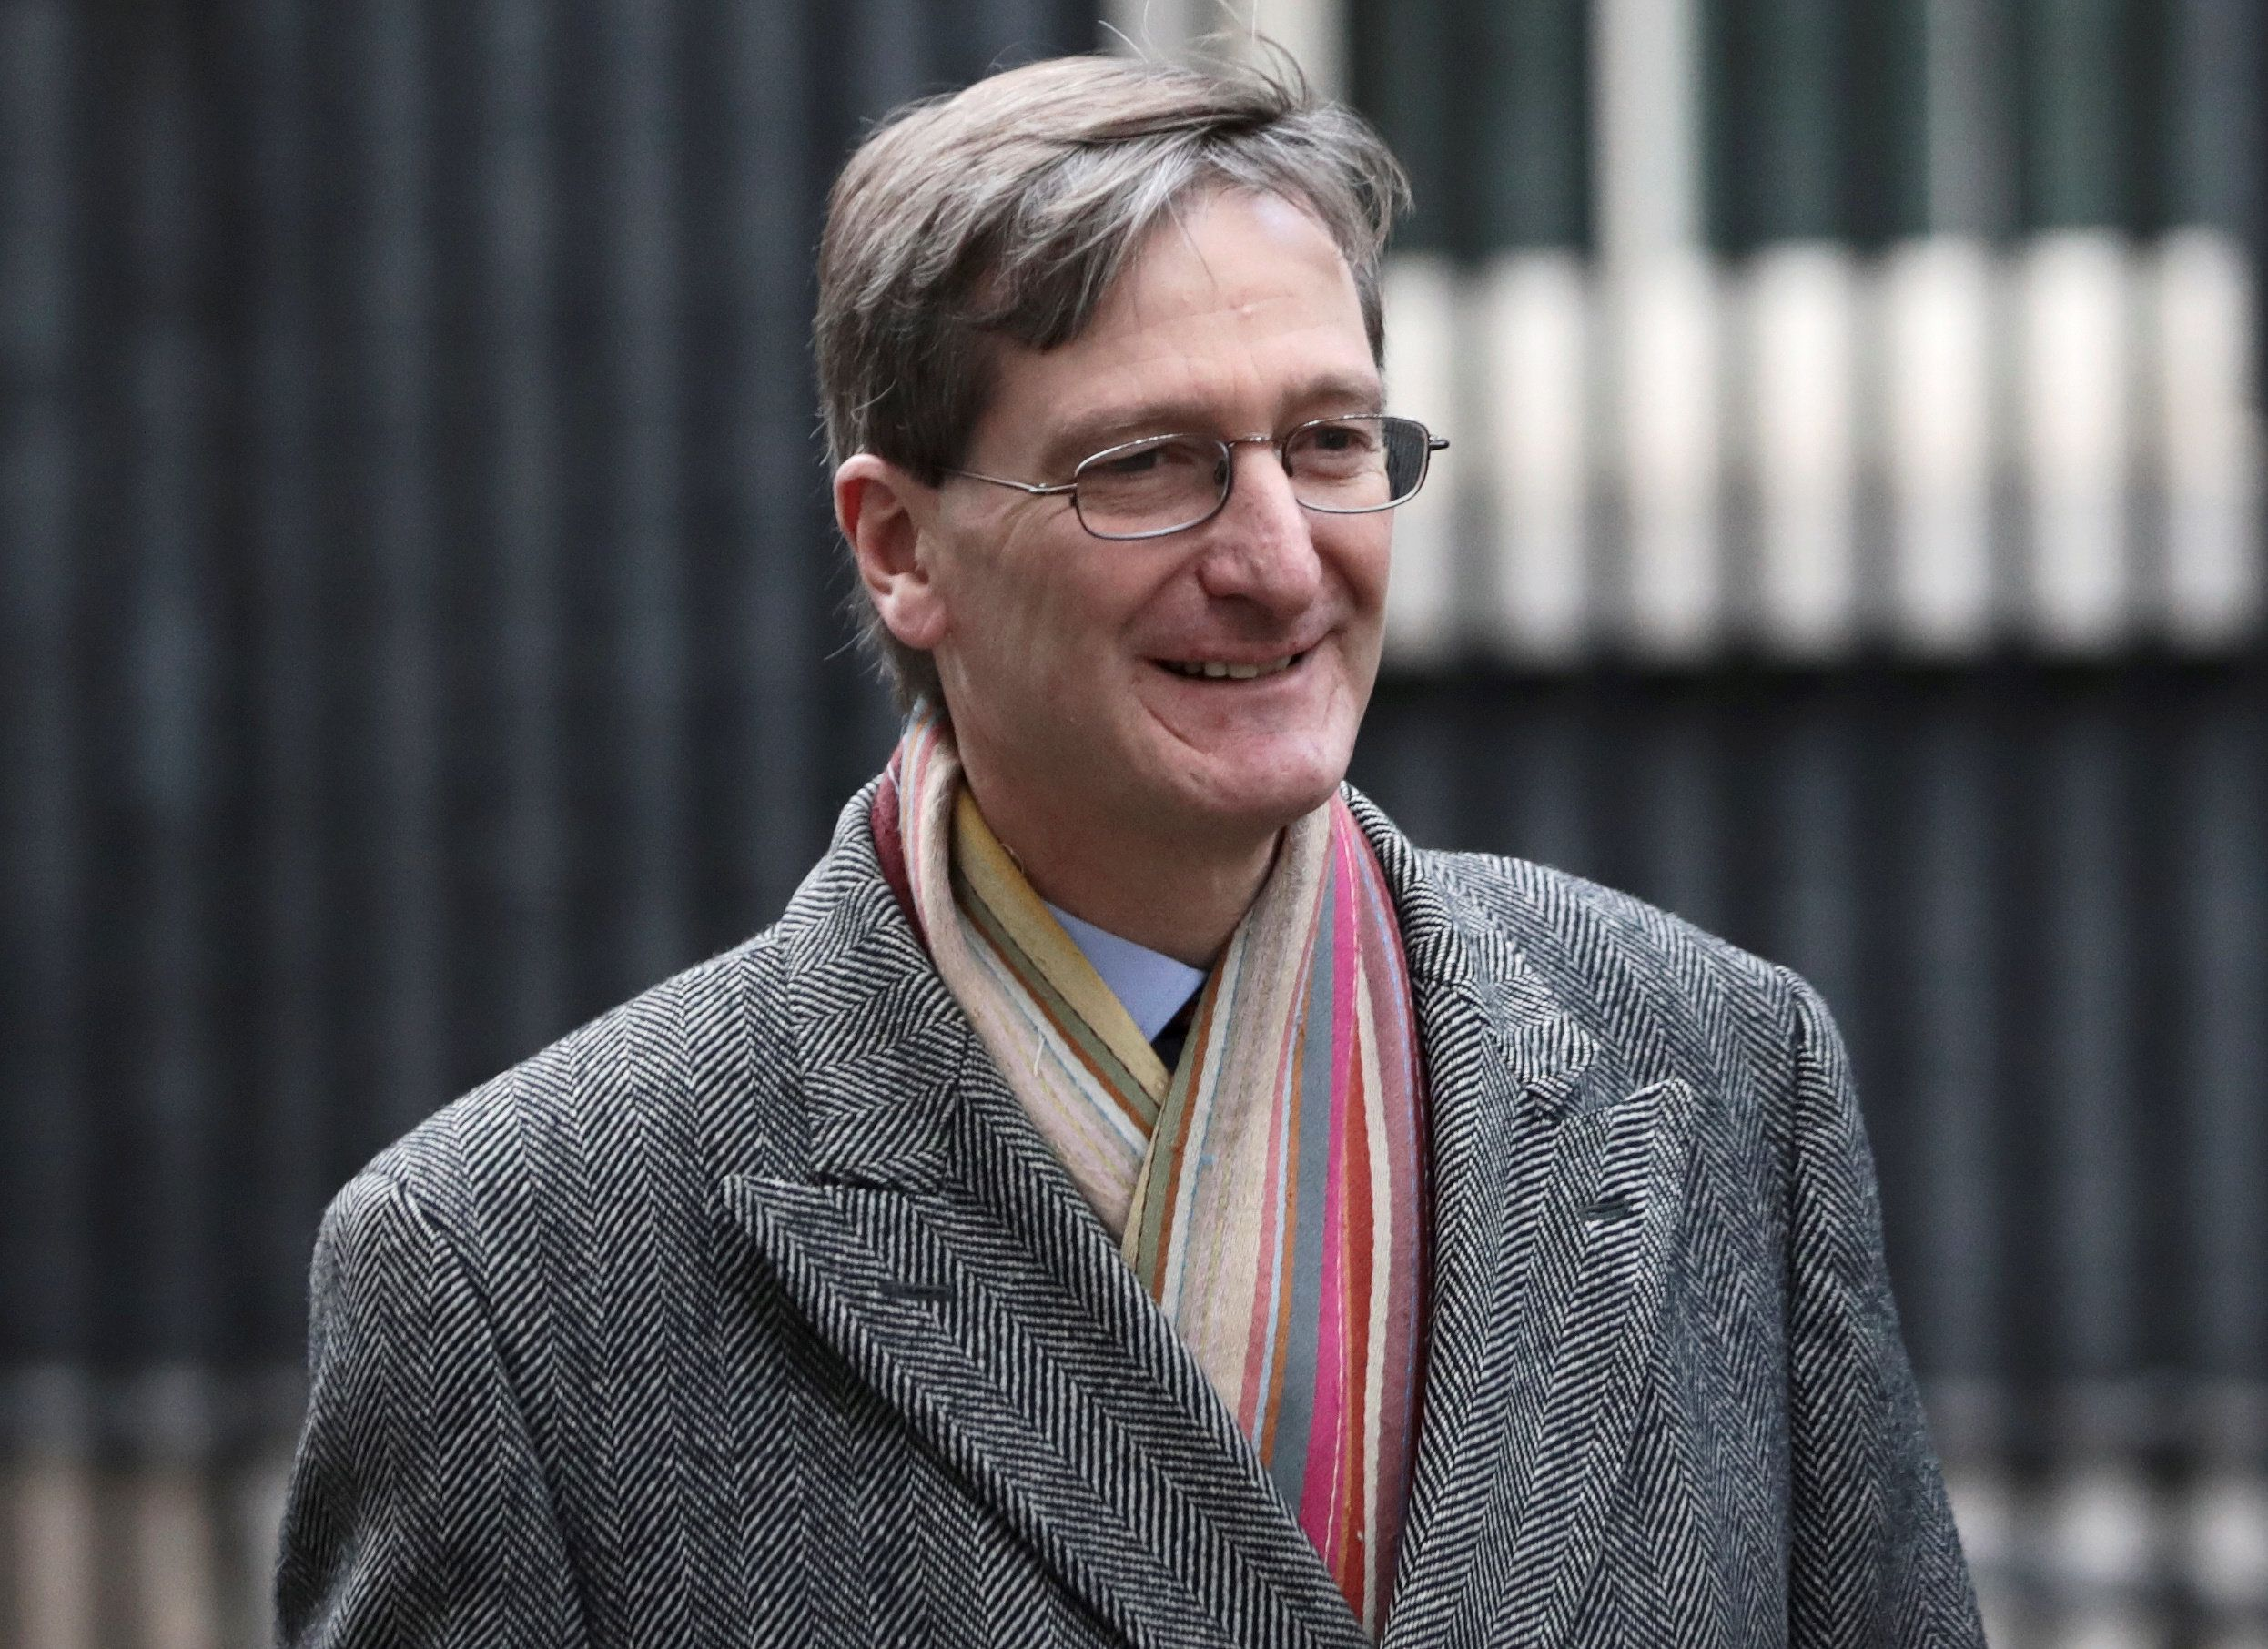 dominic grieve - photo #24